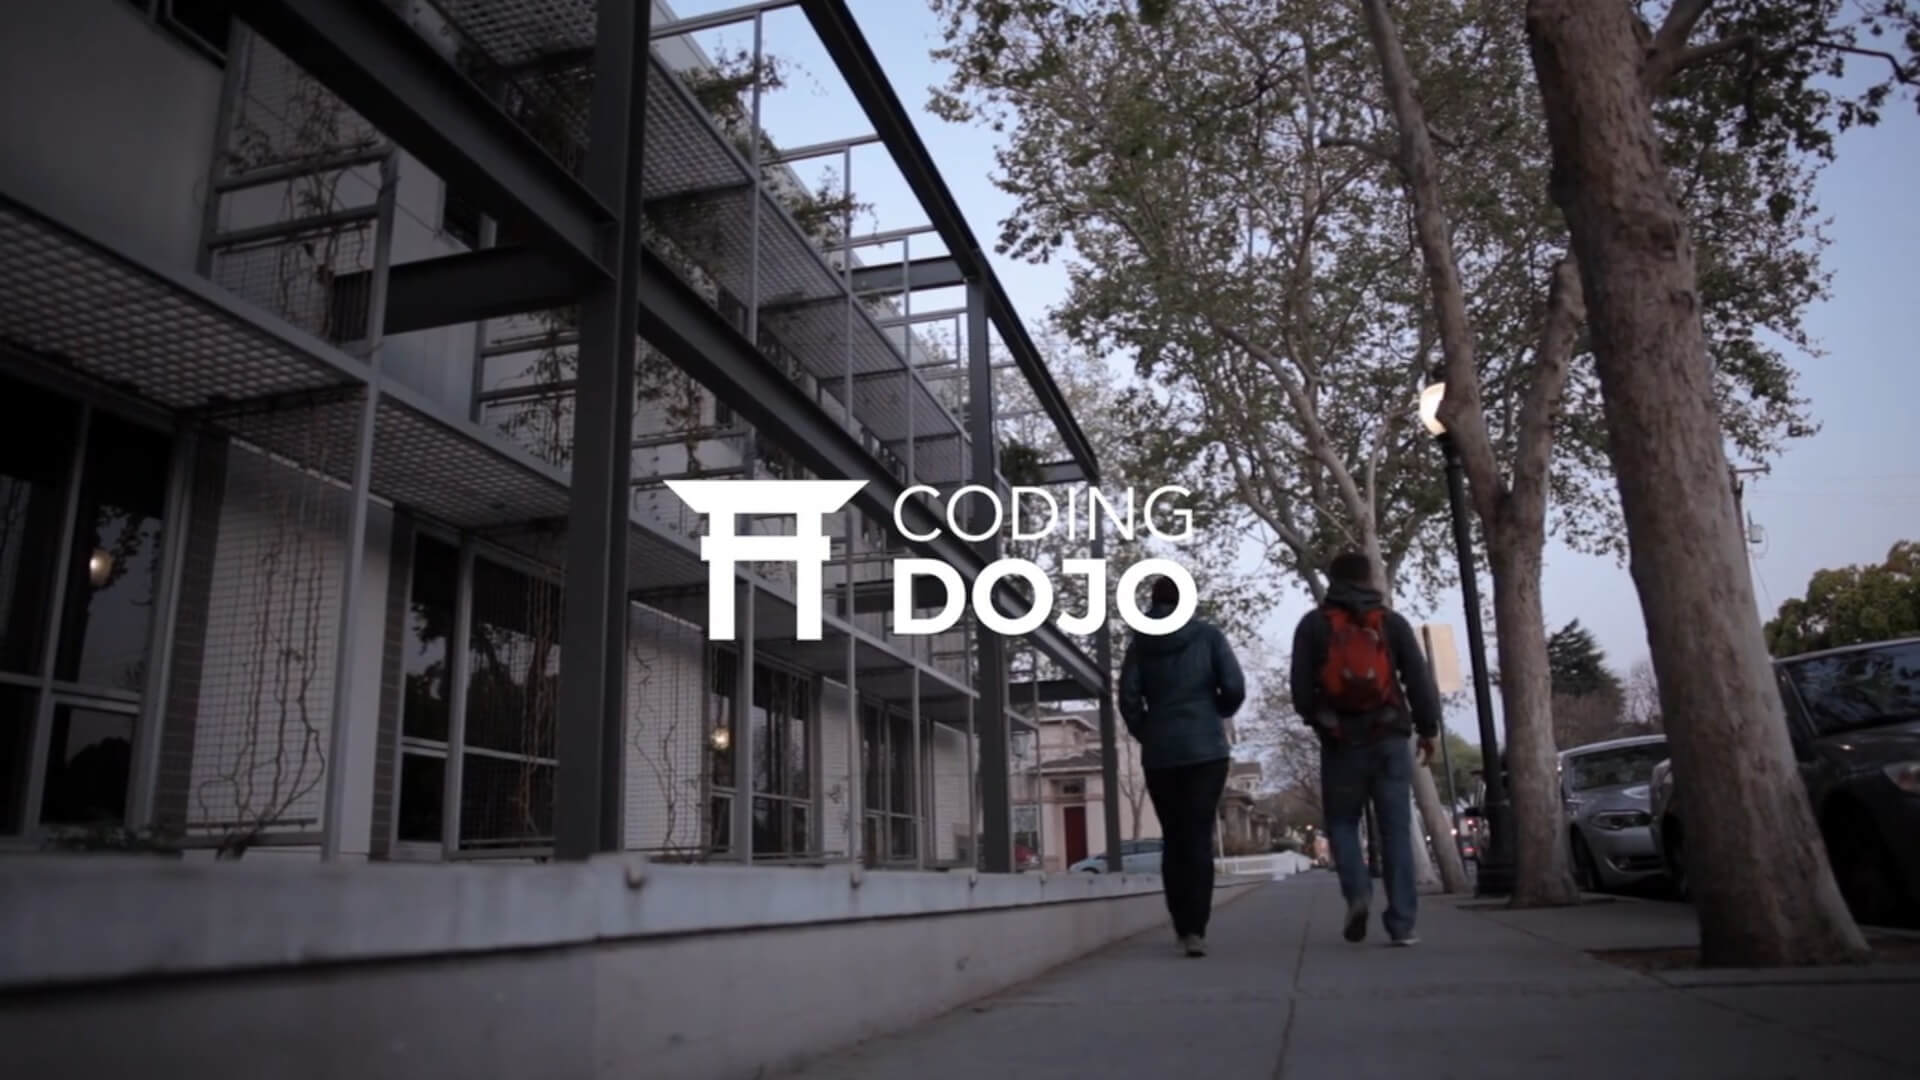 What is Coding Dojo